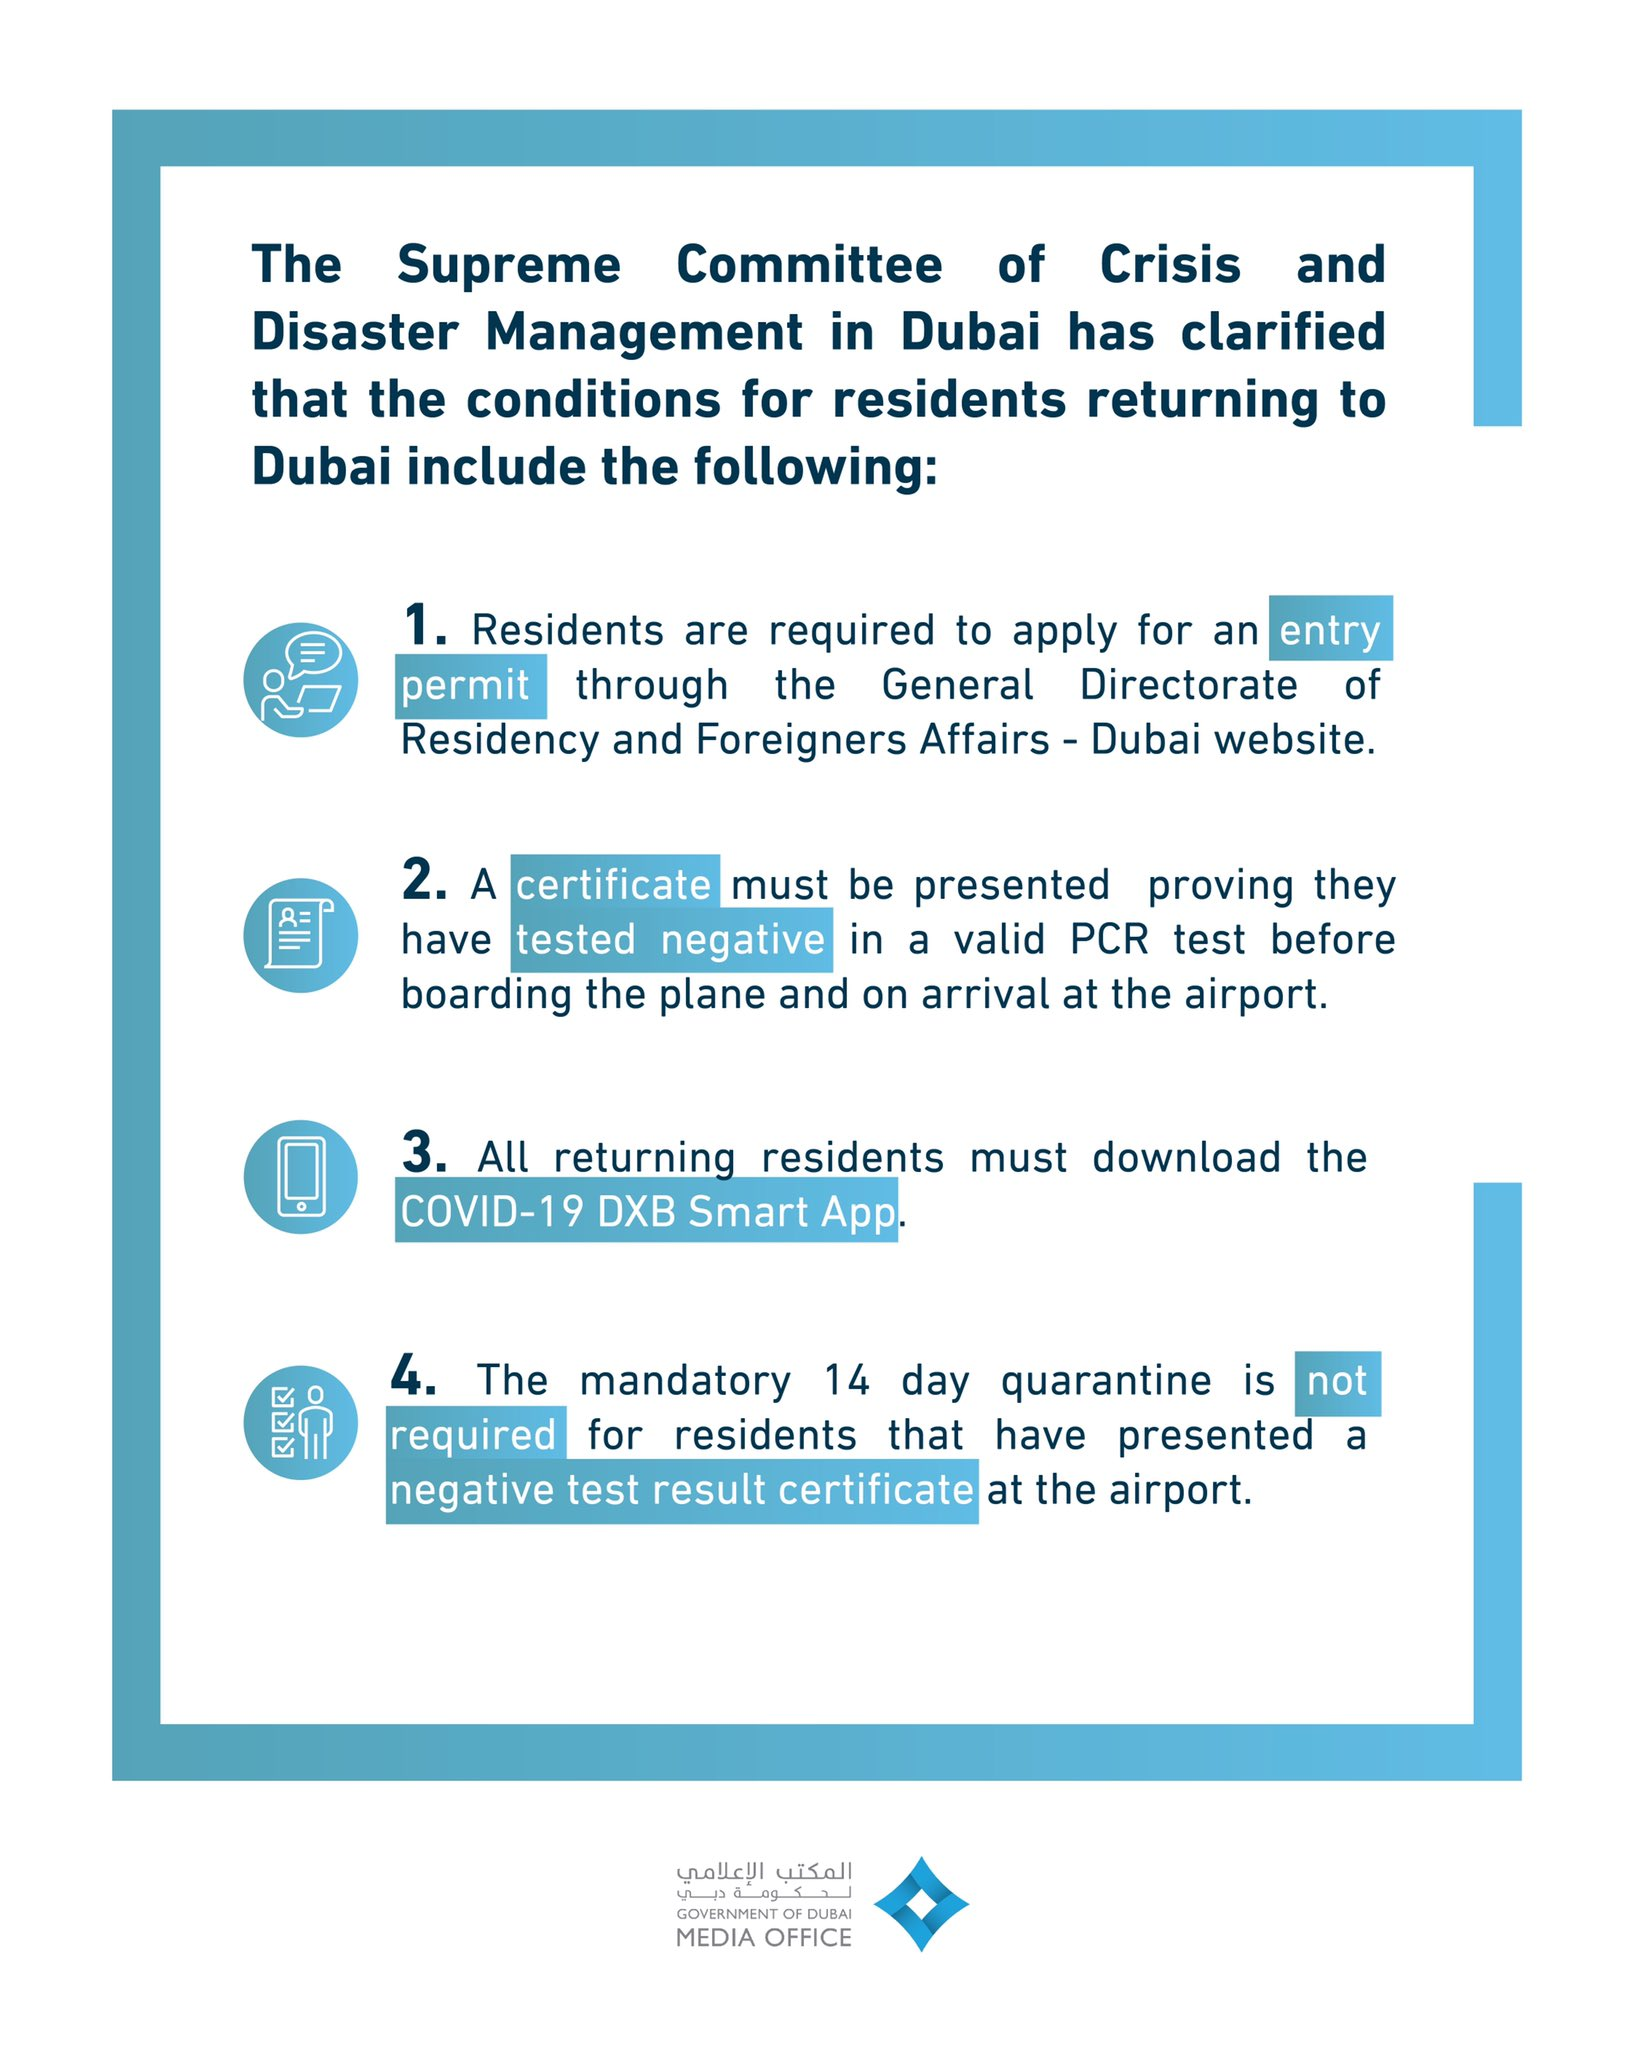 Conditions for residents returning to Dubai